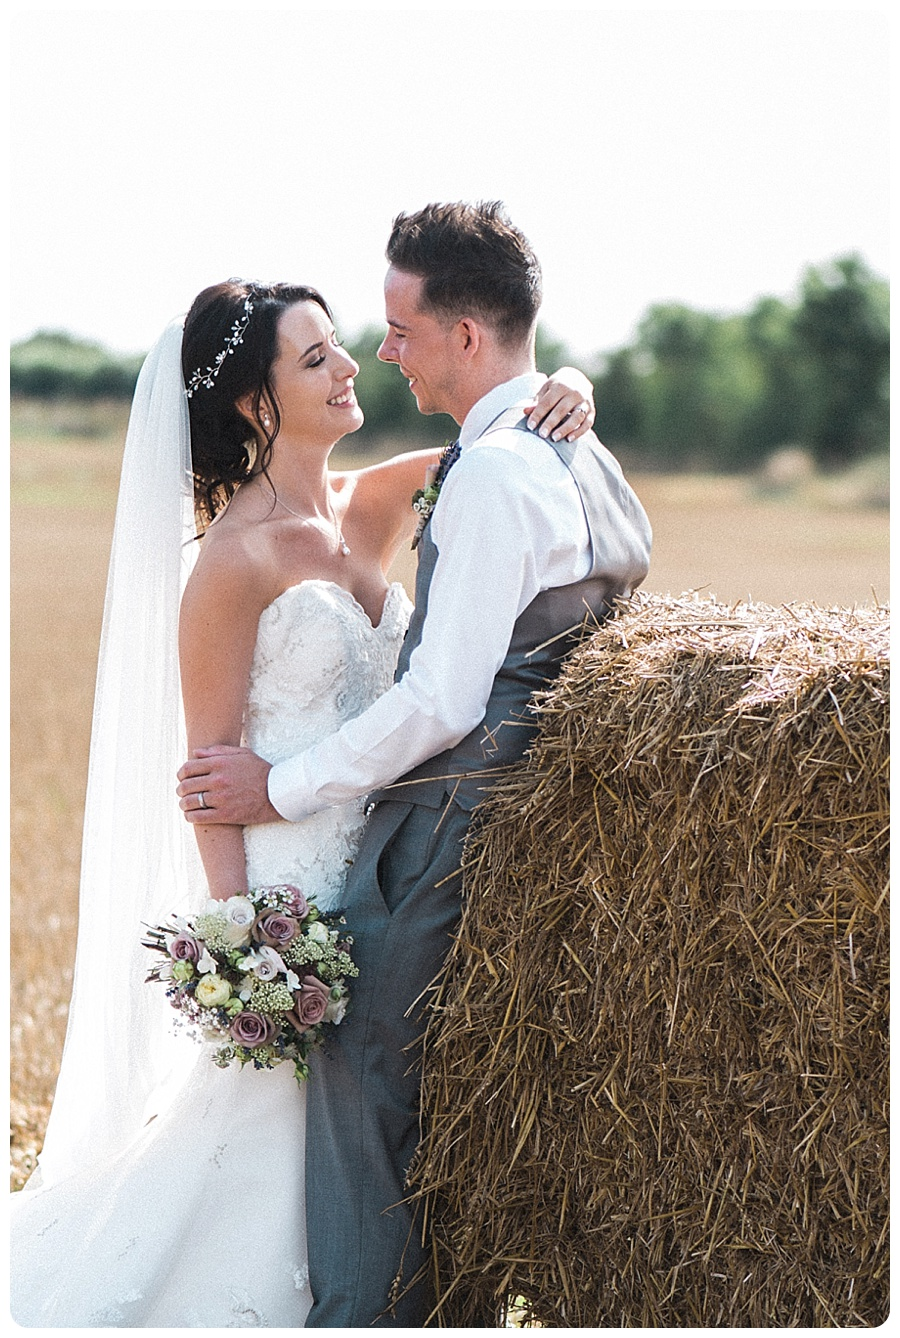 Shustoke Farm Barns Wedding Clare & Shane044.jpg